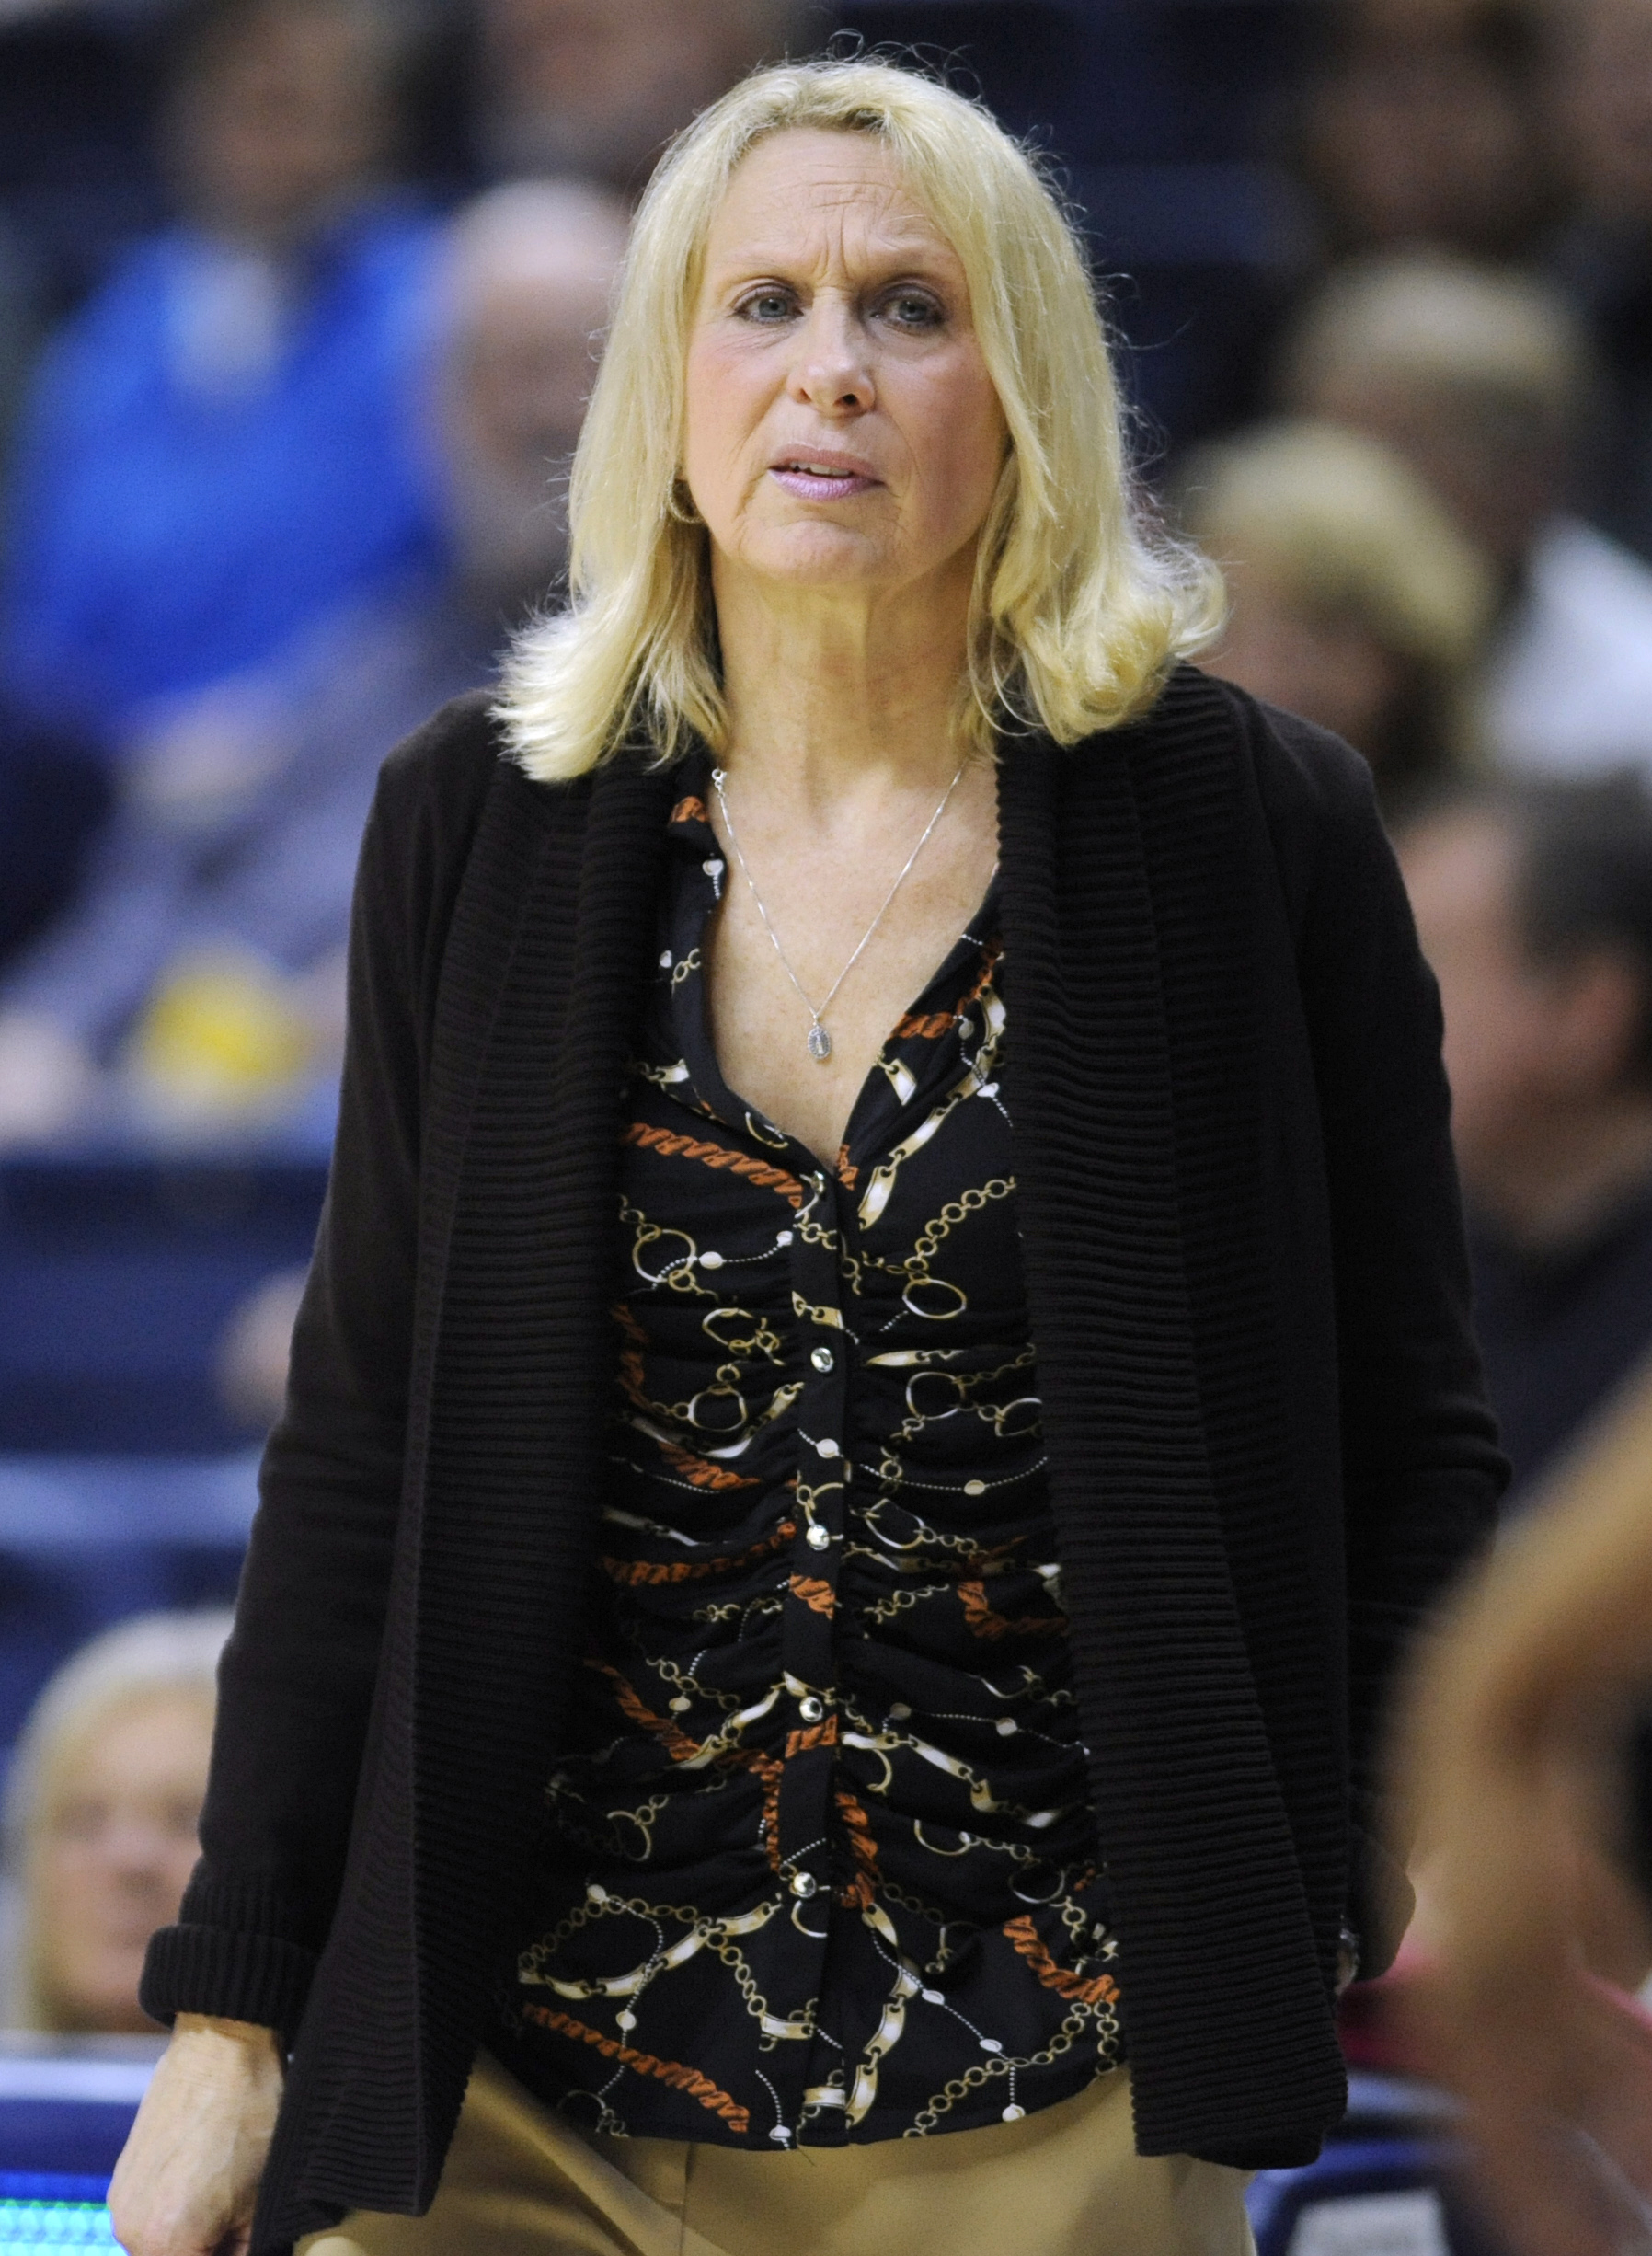 SMU coach Rhonda Rompola watches play in the first half of the team's NCAA college basketball game against Connecticut, Wednesday, Feb. 24, 2016, in Storrs, Conn. (AP Photo/Jessica Hill)